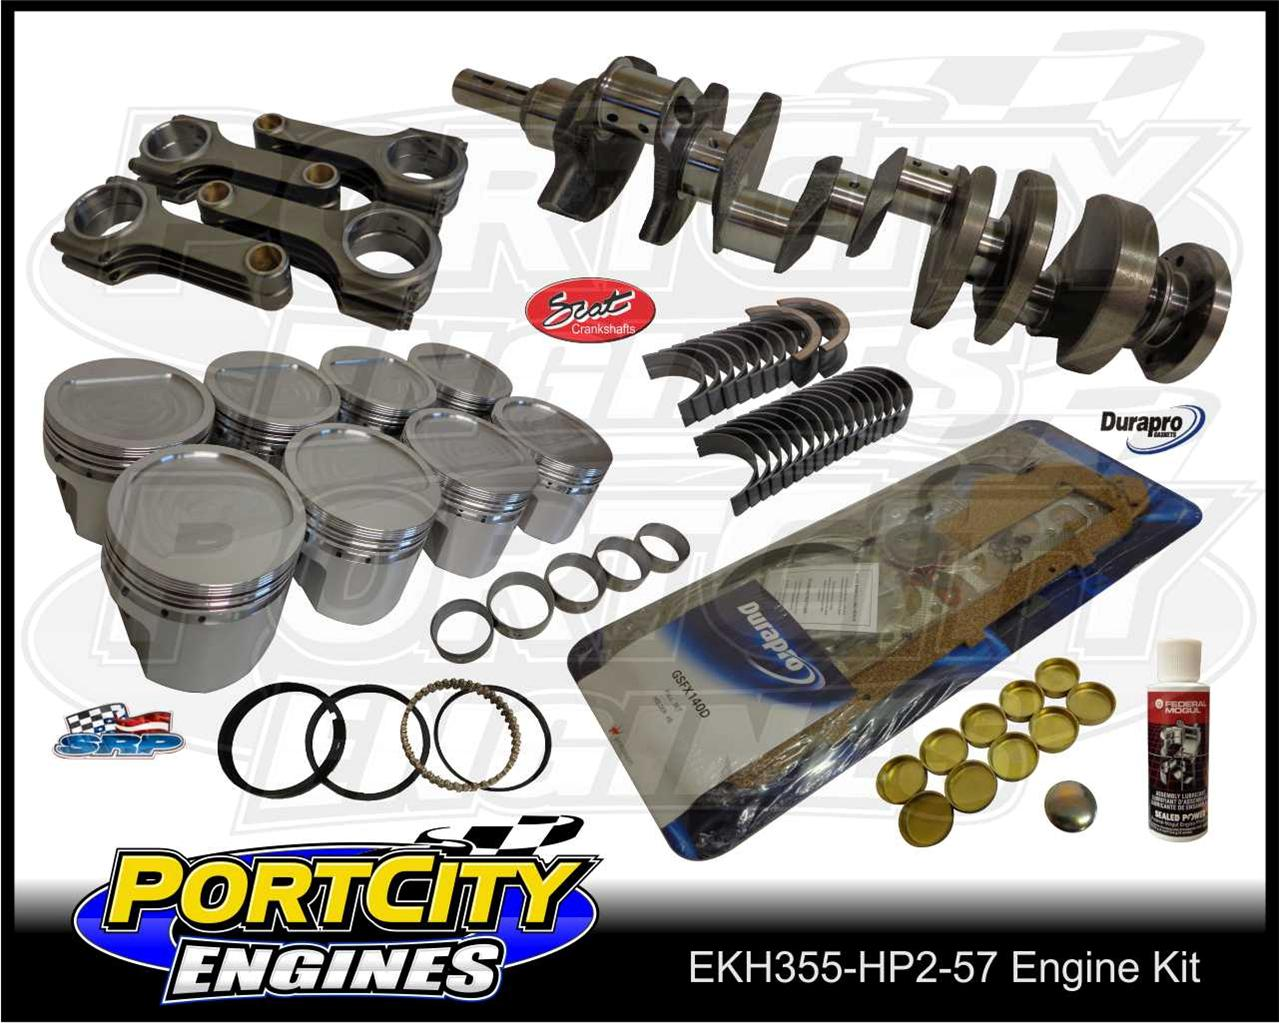 Stroker-engine-kit-for-Holden-308-Scat-Forged-5-7-H-Beam-355-V8-Torana-LH-LX